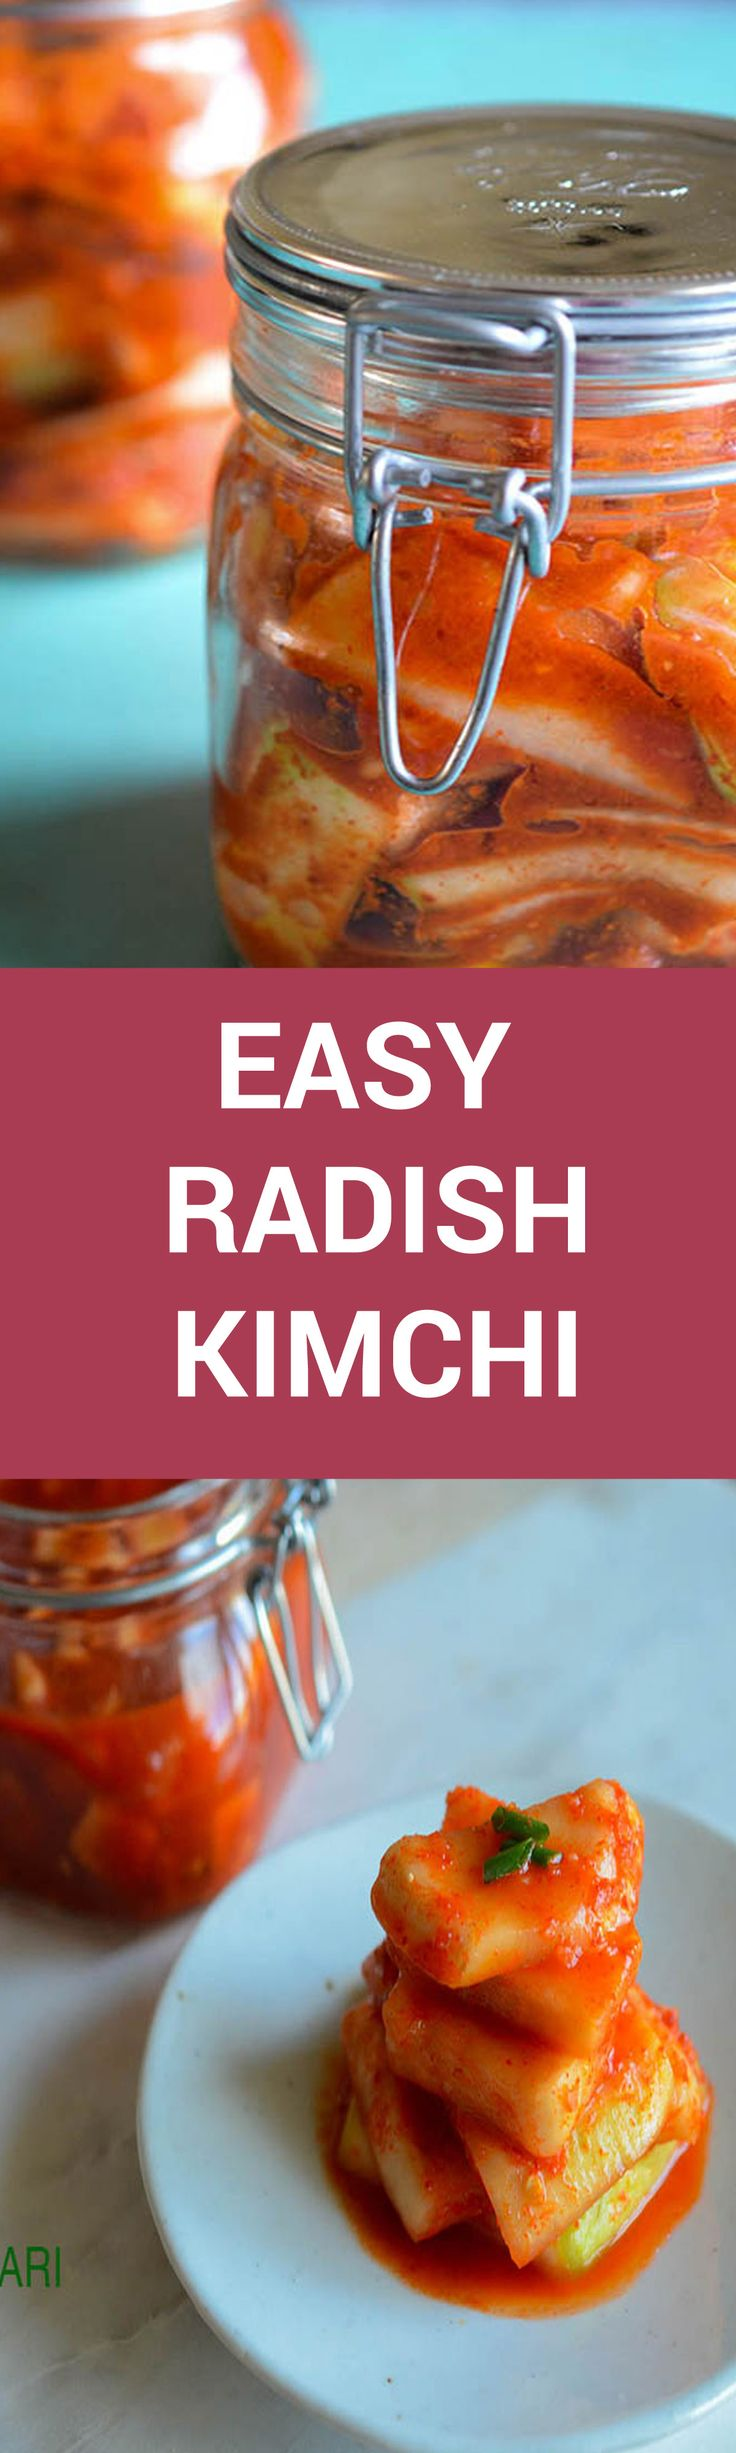 Why can't making Kimchi be quick and easy? Why does making Kimchi seem so complicated with so many steps? So here, I post a 6 ingredient (minus the brine) Easy Radish Kimchi recipe that is still traditional and fabulously delicious.